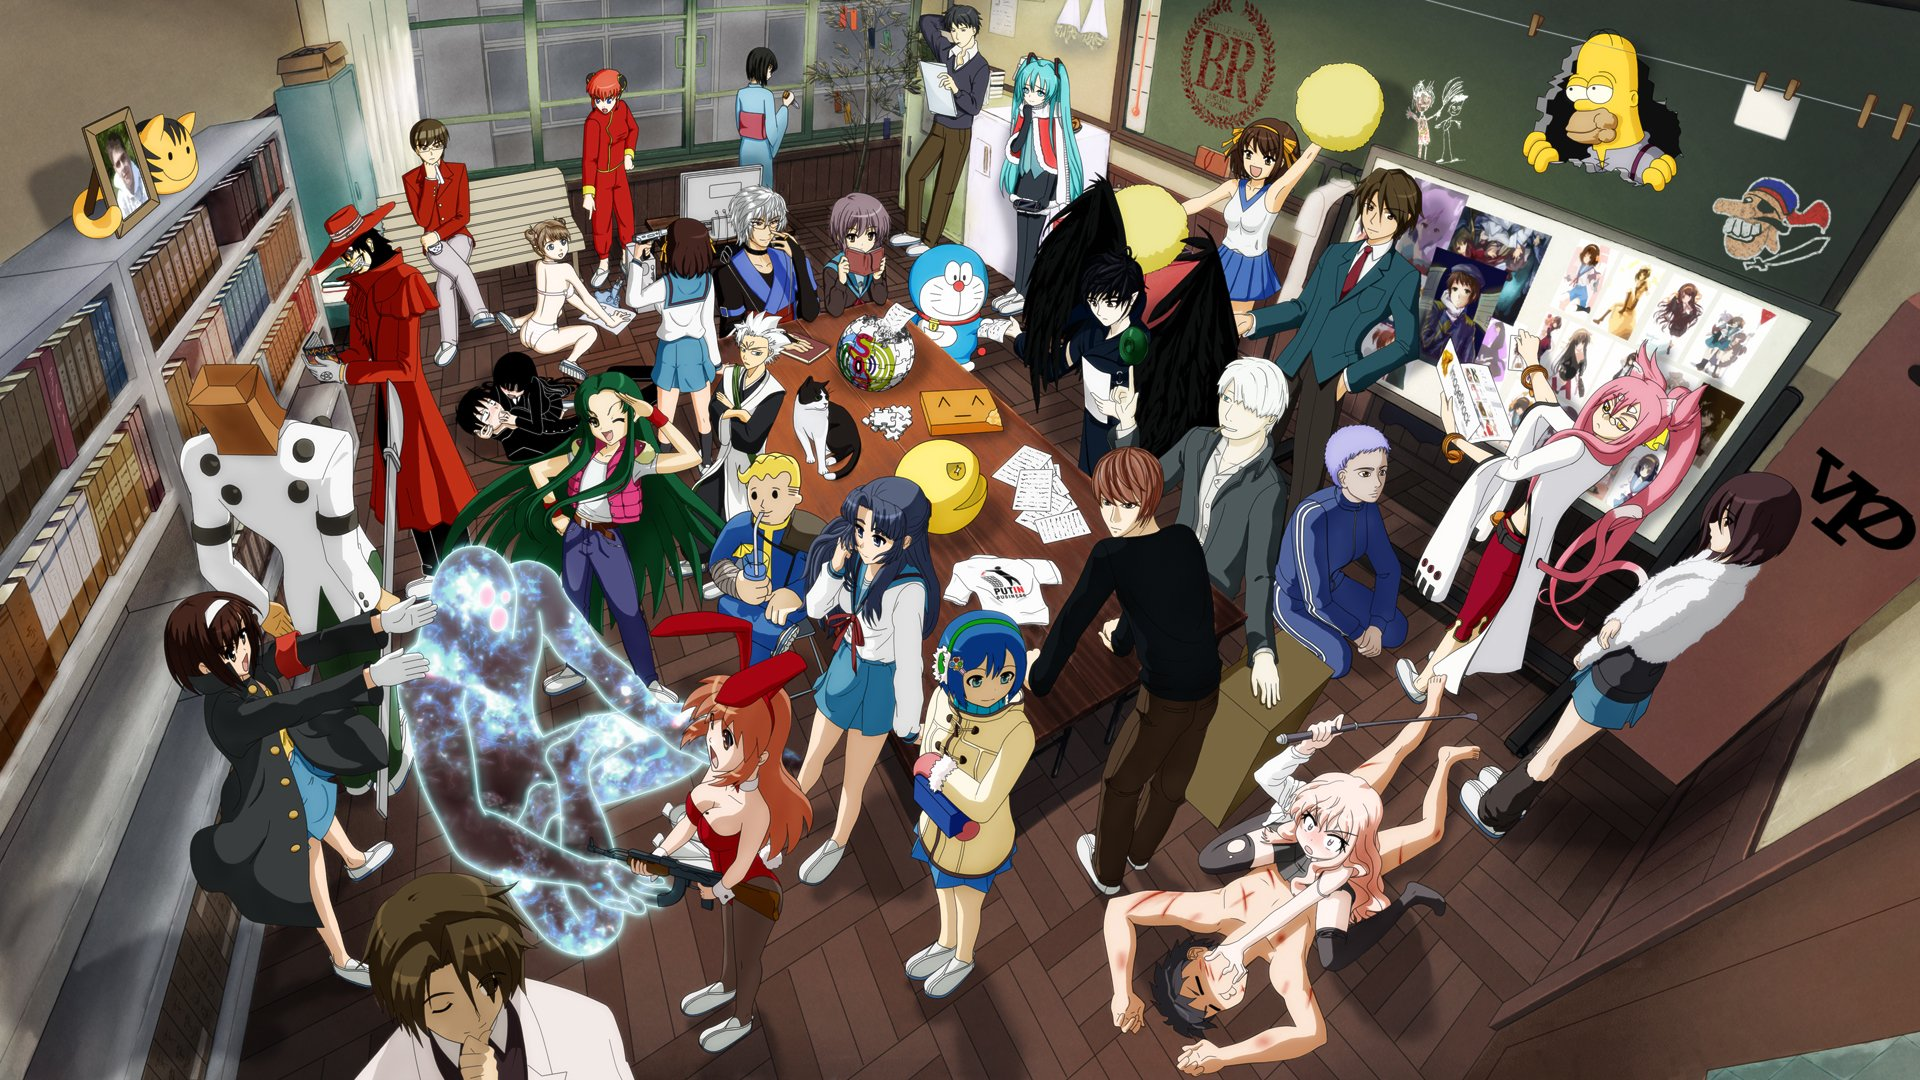 Anime - Crossover  Assassination Classroom Kyon (Haruhi) Light Yagami Hatsune Miku Alucard (Hellsing) Haruhi Suzumiya Yuki Nagato Guilty Gear Kagura (Gintama) The Simpsons Shiki Ryougi Blazblue Anime Melancholy of Haruhi Suzumiya Fallout Bleach Gintama Touhou Kara no Kyōkai Hellsing Vocaloid Death Note Doraemon Keima Katsuragi Nanami Madobe Nodame Cantabile OS-tan Louise Françoise Le Blanc de La Vallière Kokonoe Mercury Tōshirō Hitsugaya Koro-sensei Pac-Man Vault Boy Mikuru Asahina Zero no Tsukaima Rinnosuke Morichika The World God Only Knows Tsuruya (Haruhi) Hiraga Saito Wallpaper